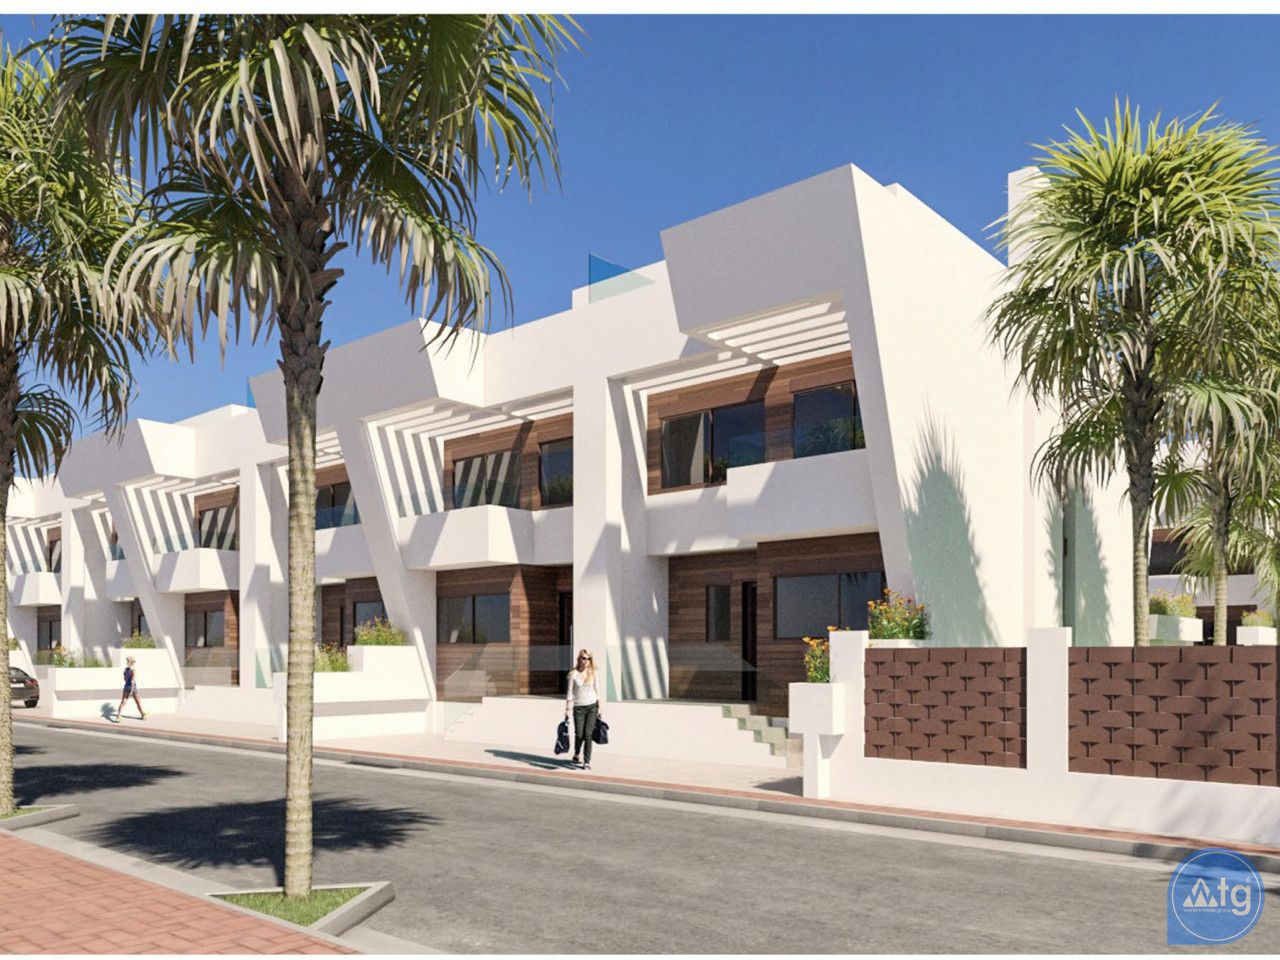 Piano terra in Centro. New duplex in sant joan d'alacant, 4 bedrooms, area 108 m2  - ah